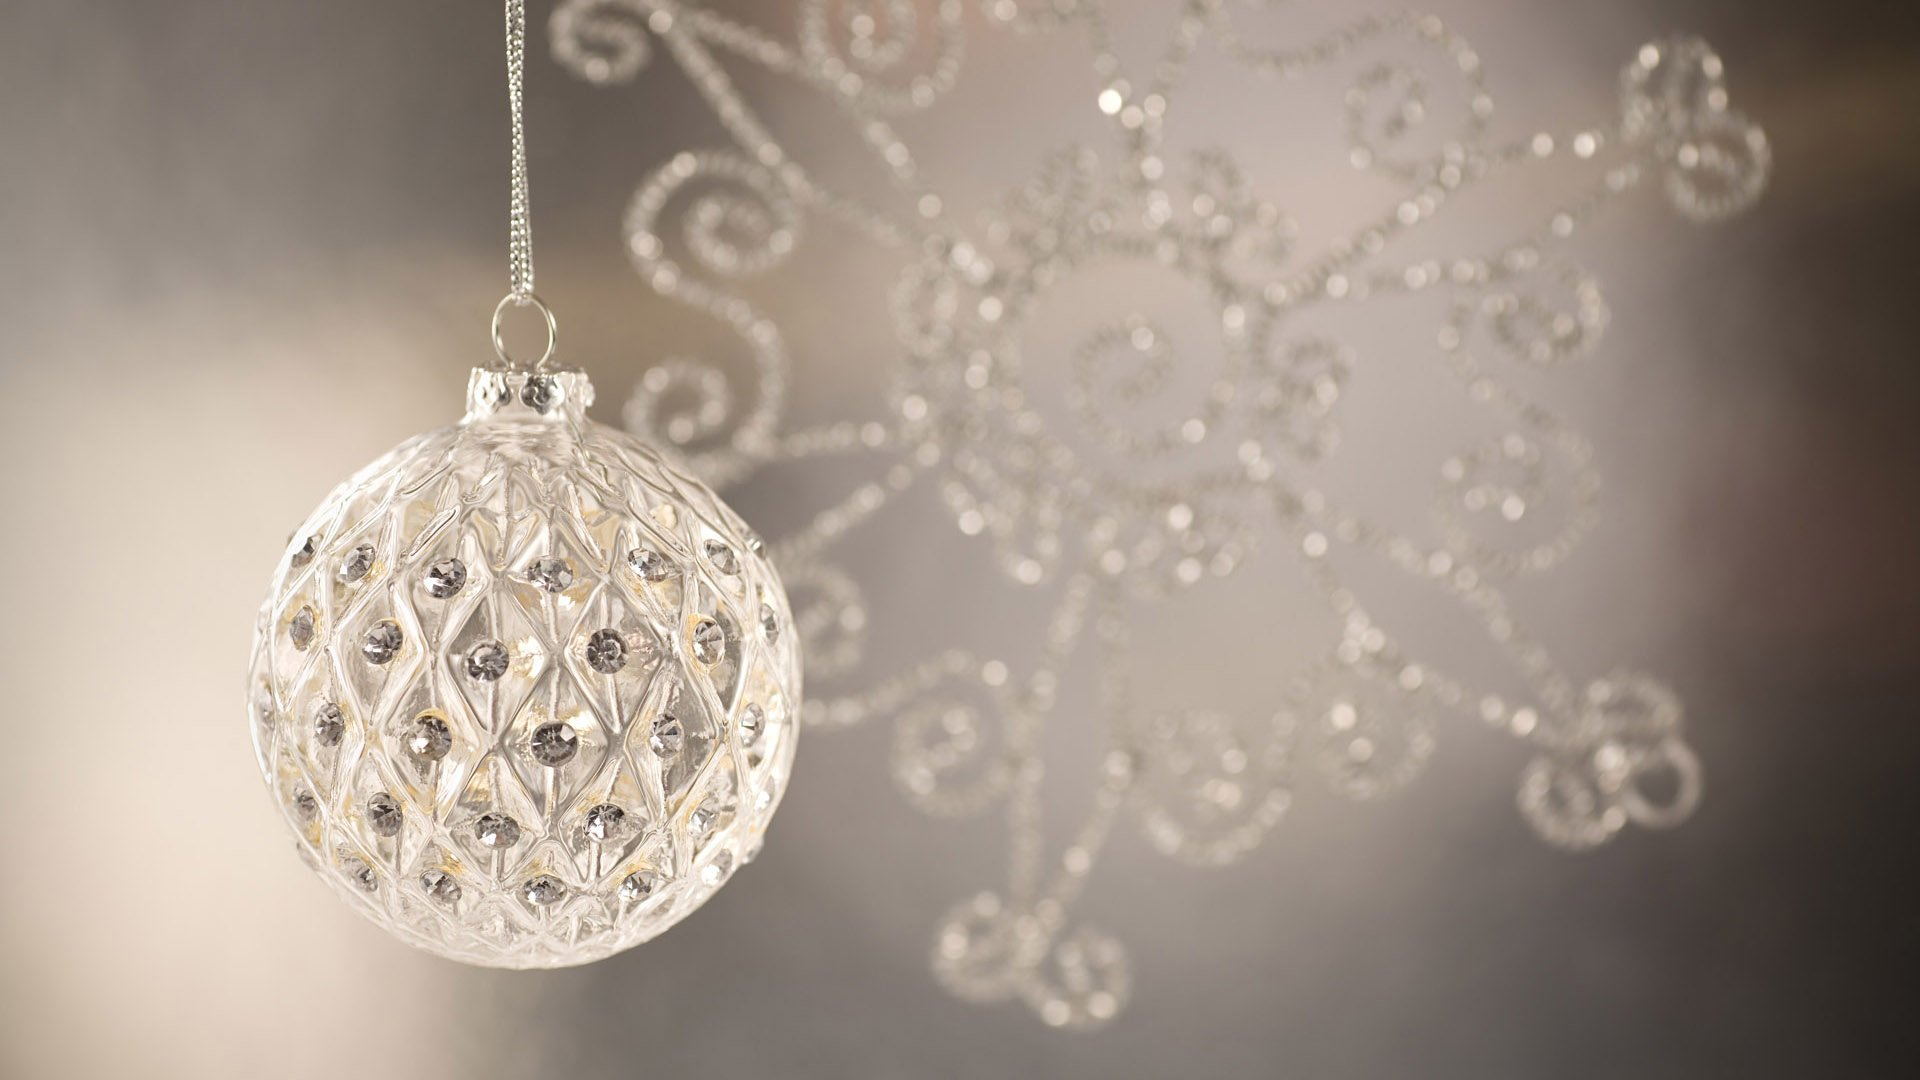 christmas-silver-ball-decoration-bokeh-blur-background-1920x1080-1920×1080-wallpaper-wpc9003564